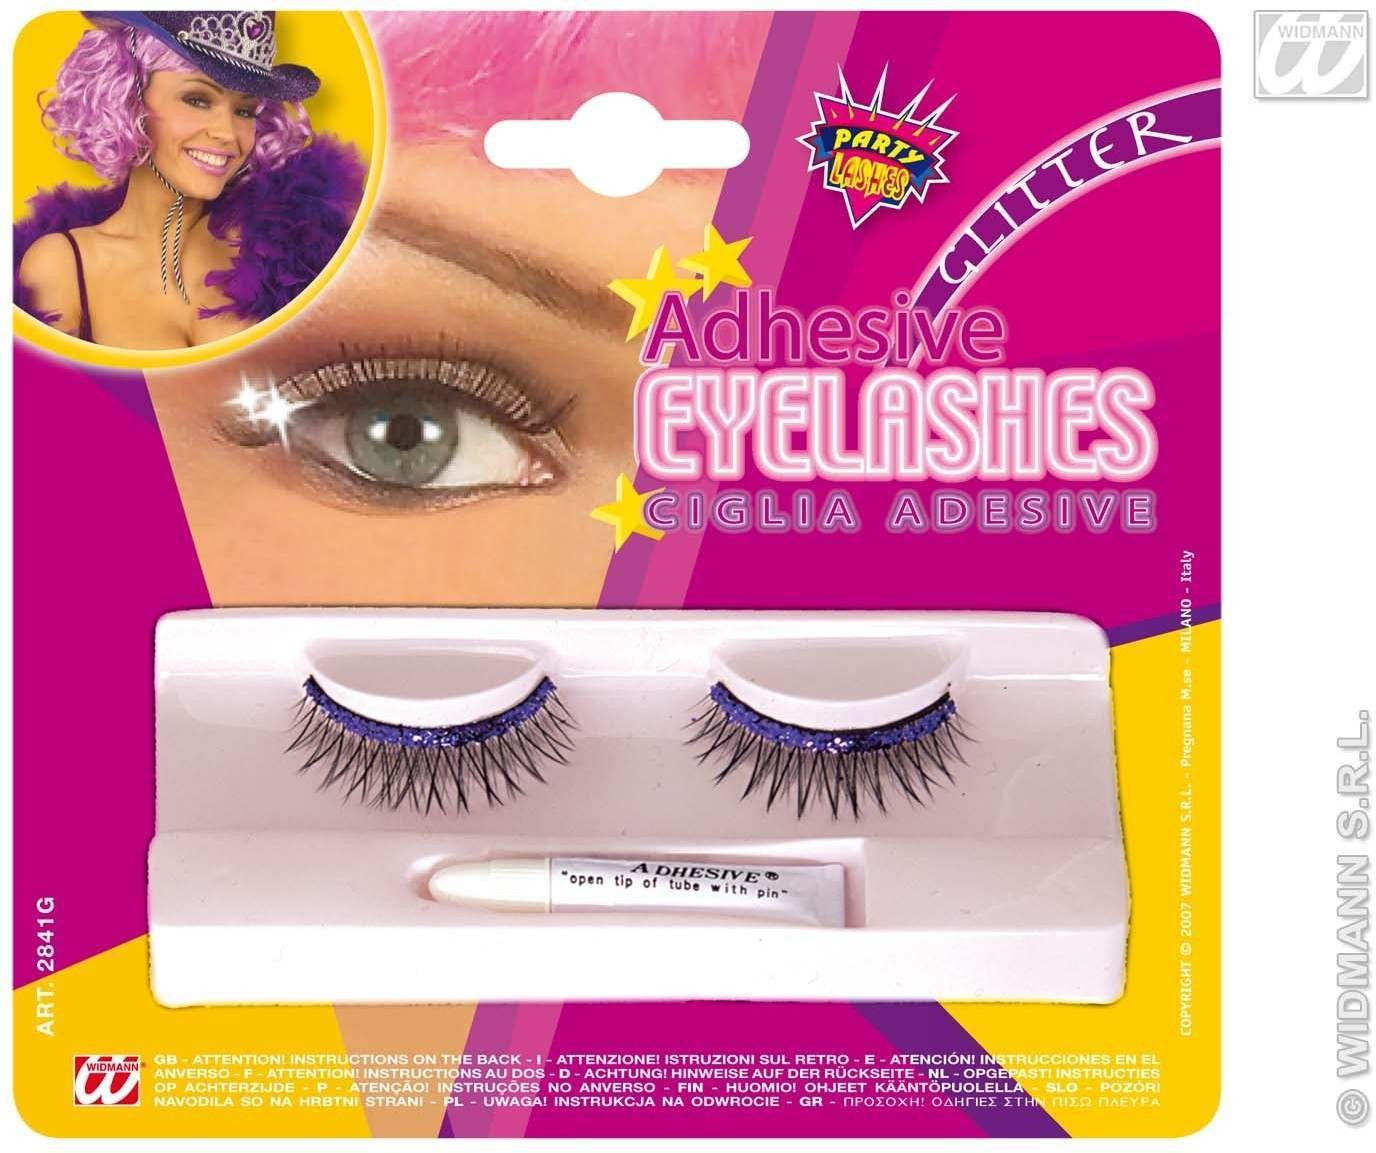 Glitter Eyelashes With Adhesive - Fancy Dress